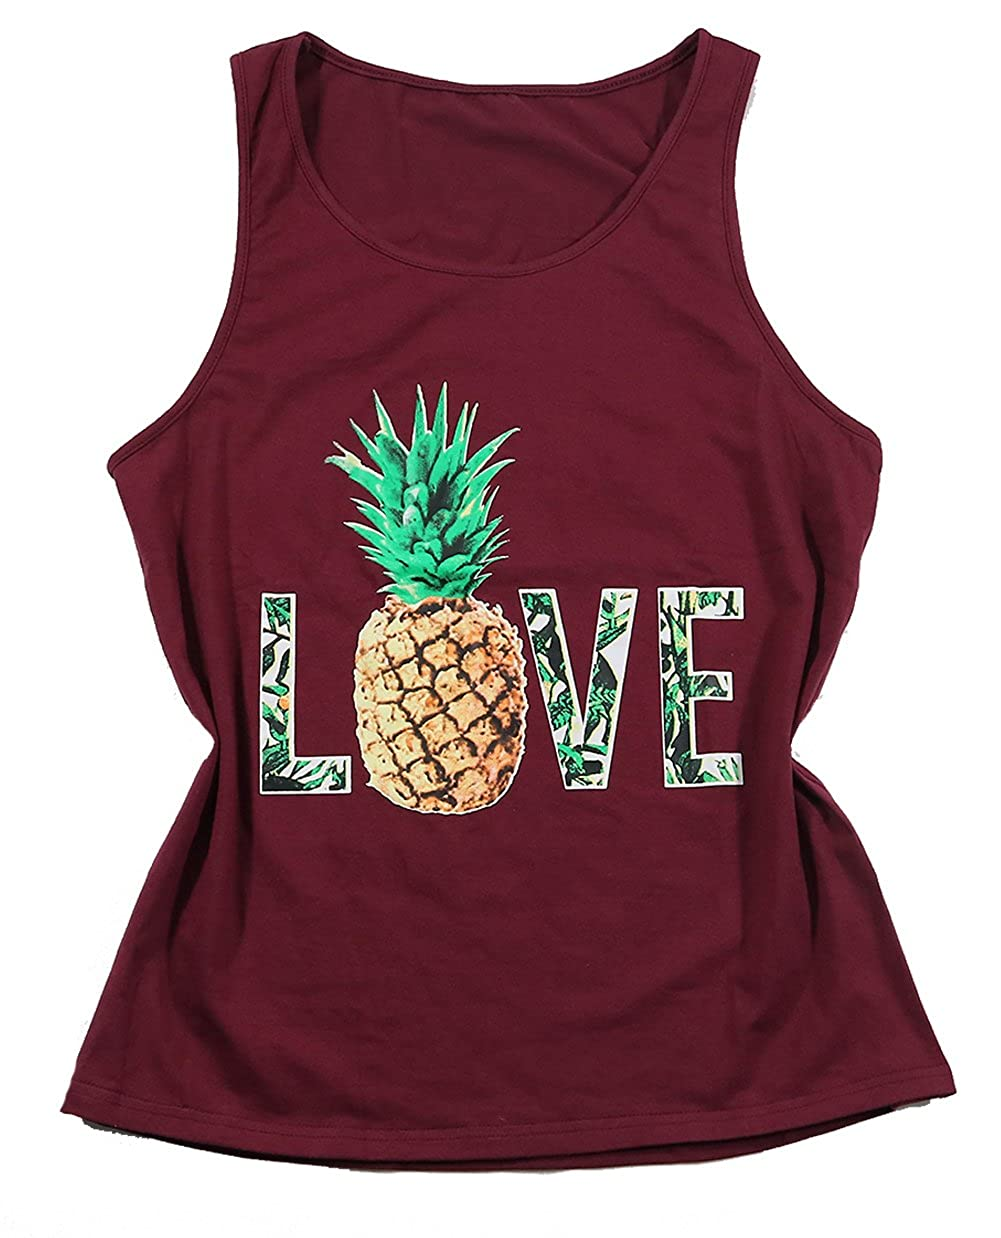 NANYUAYA Women's Love Pineapple Letter Graphic Funny Tops Casual Cami Shirt Blouse